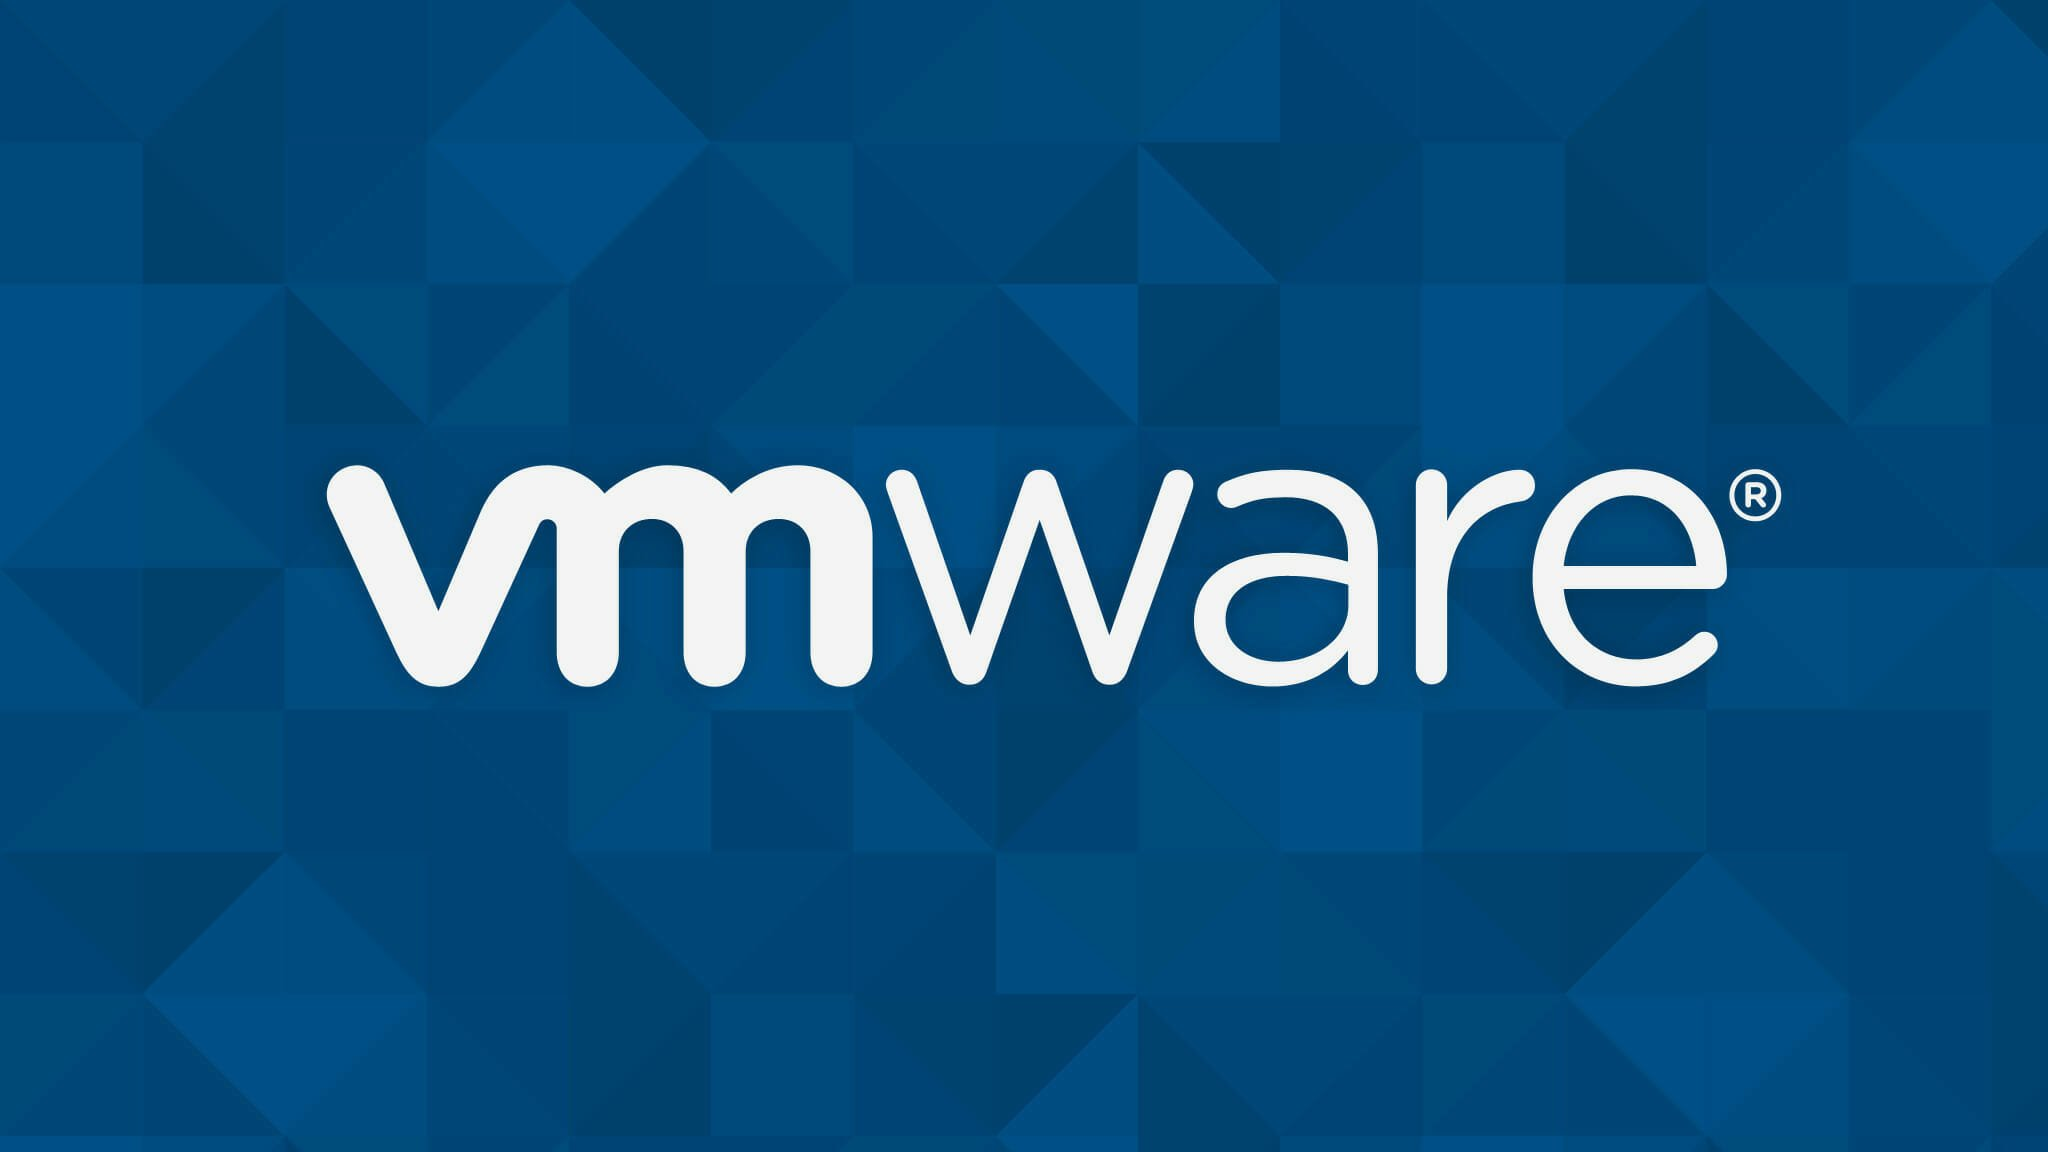 Tips & Tricks to Pass VMware Certification Exams Easily